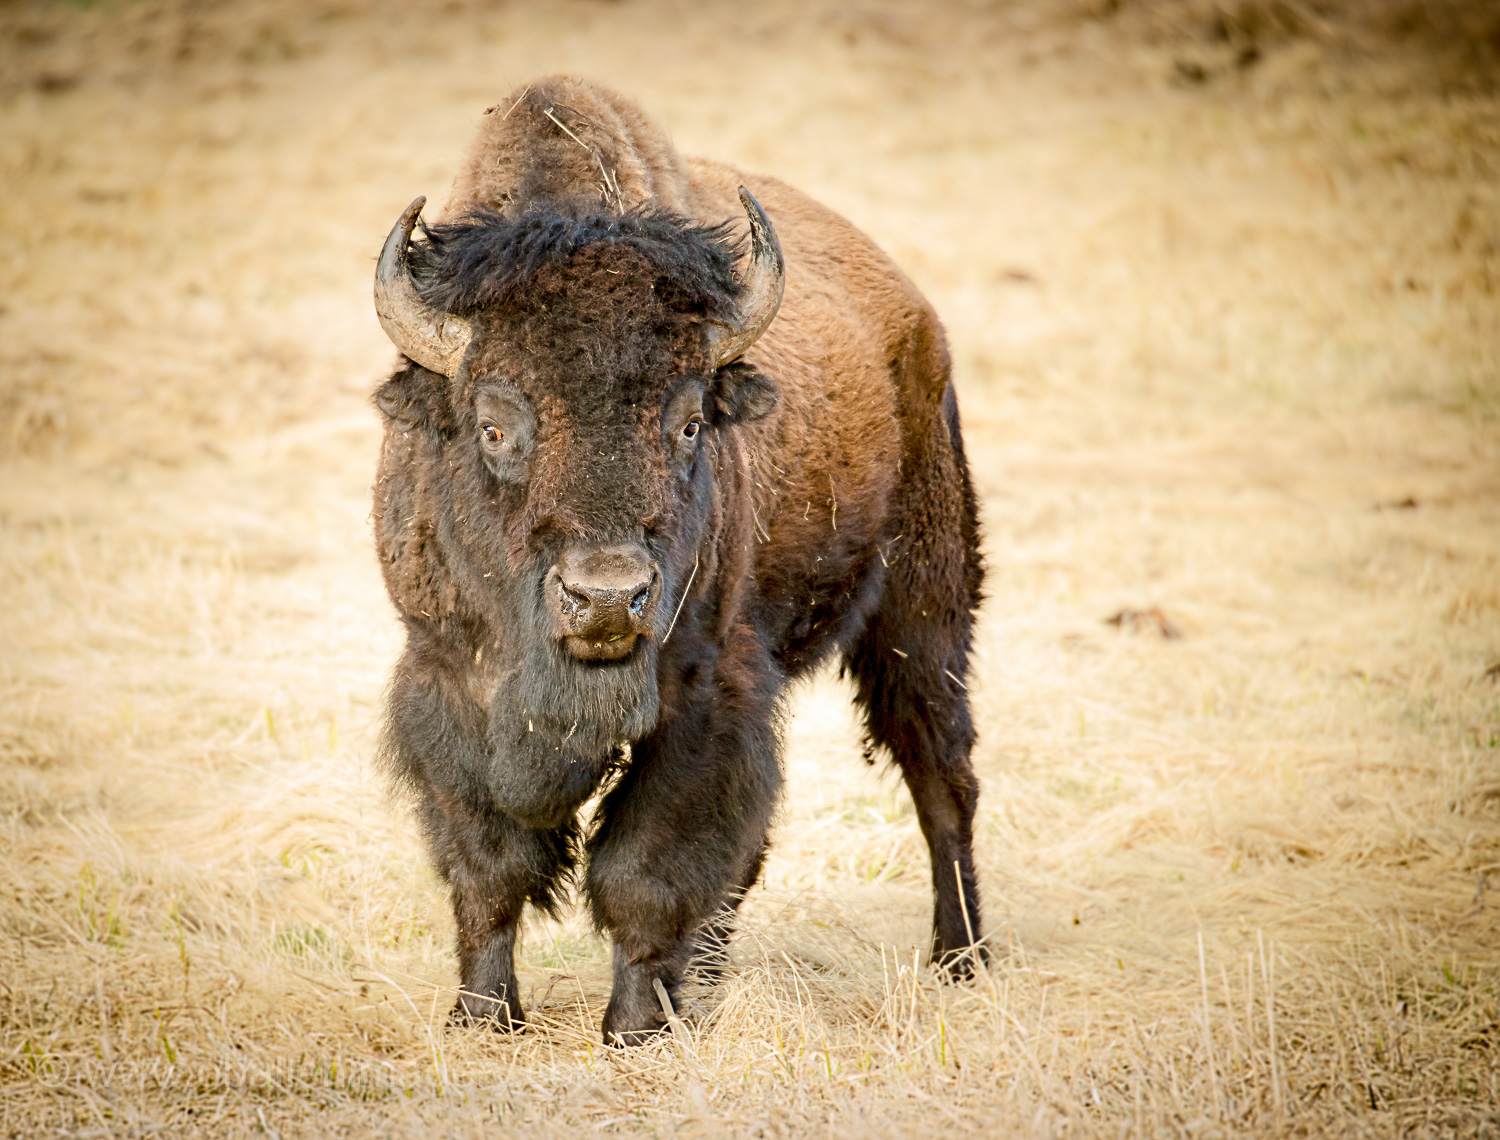 Beautiful Bison photographed in April near Roosevelt Lodge.